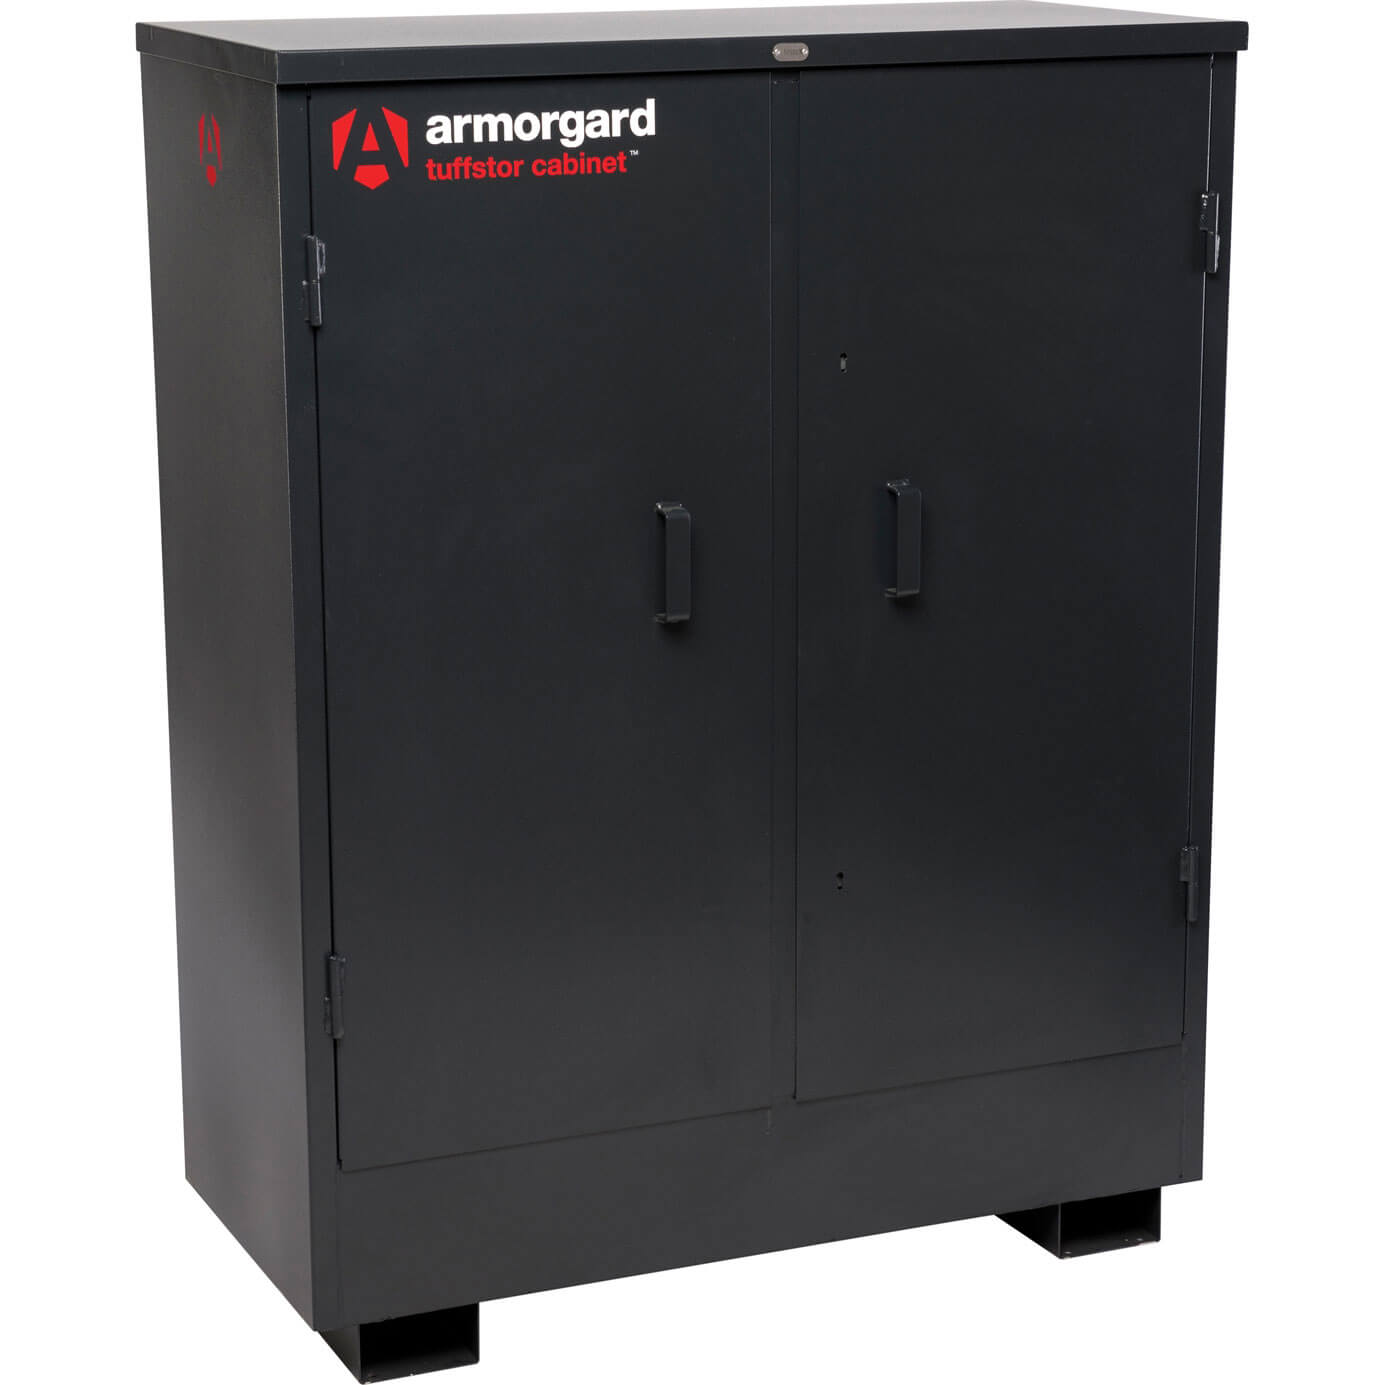 Armorgard Tuffstor Vehicle Security Cabinet 120cm x 55cm x 150cm